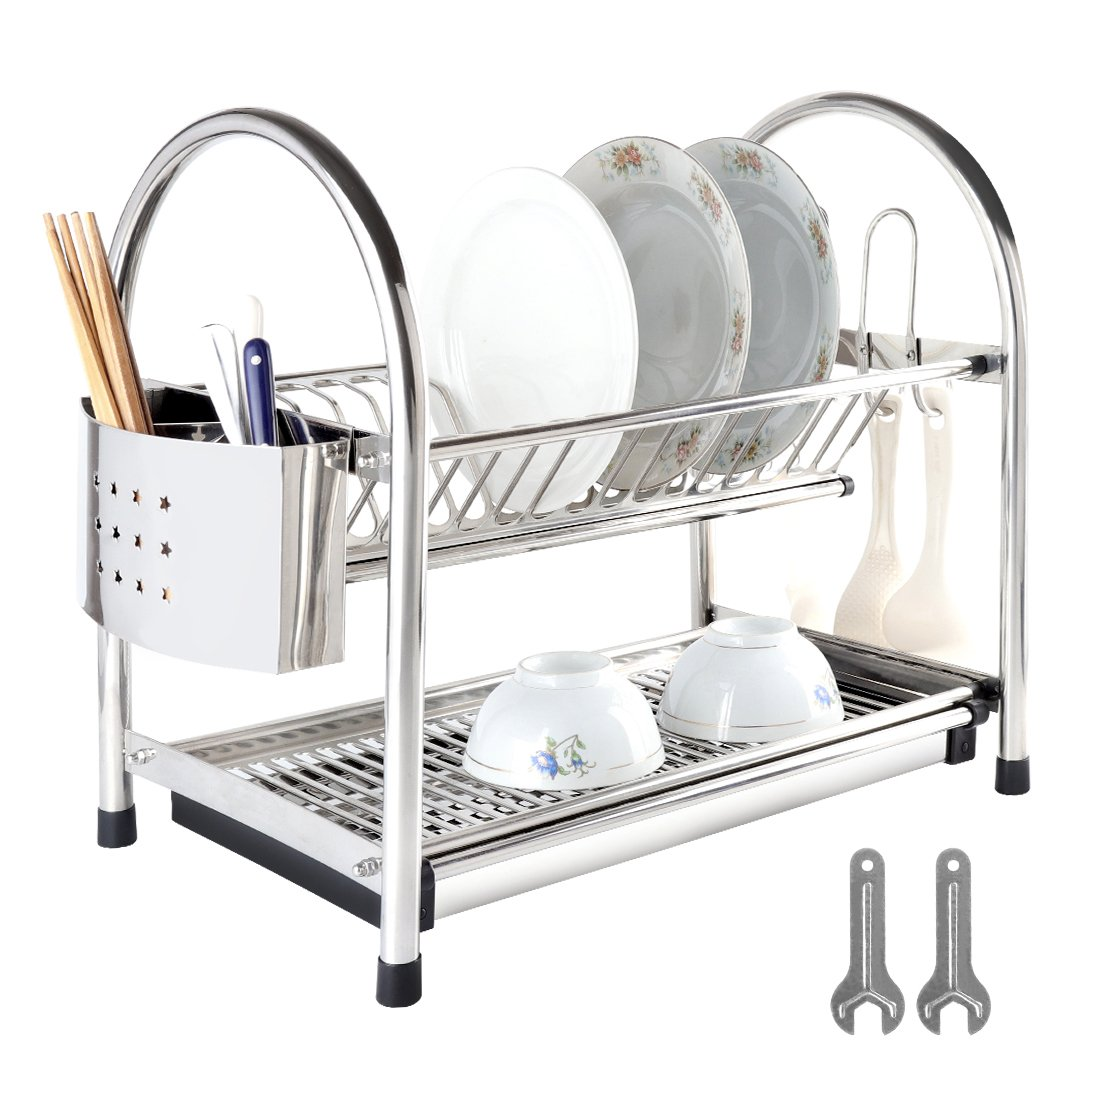 Dish Drying Rack 2 Tiers Dish Drainer Set Stainless Steel with Removable Utensil Holder & Hook Racks & Drain Board Set for Kitchen